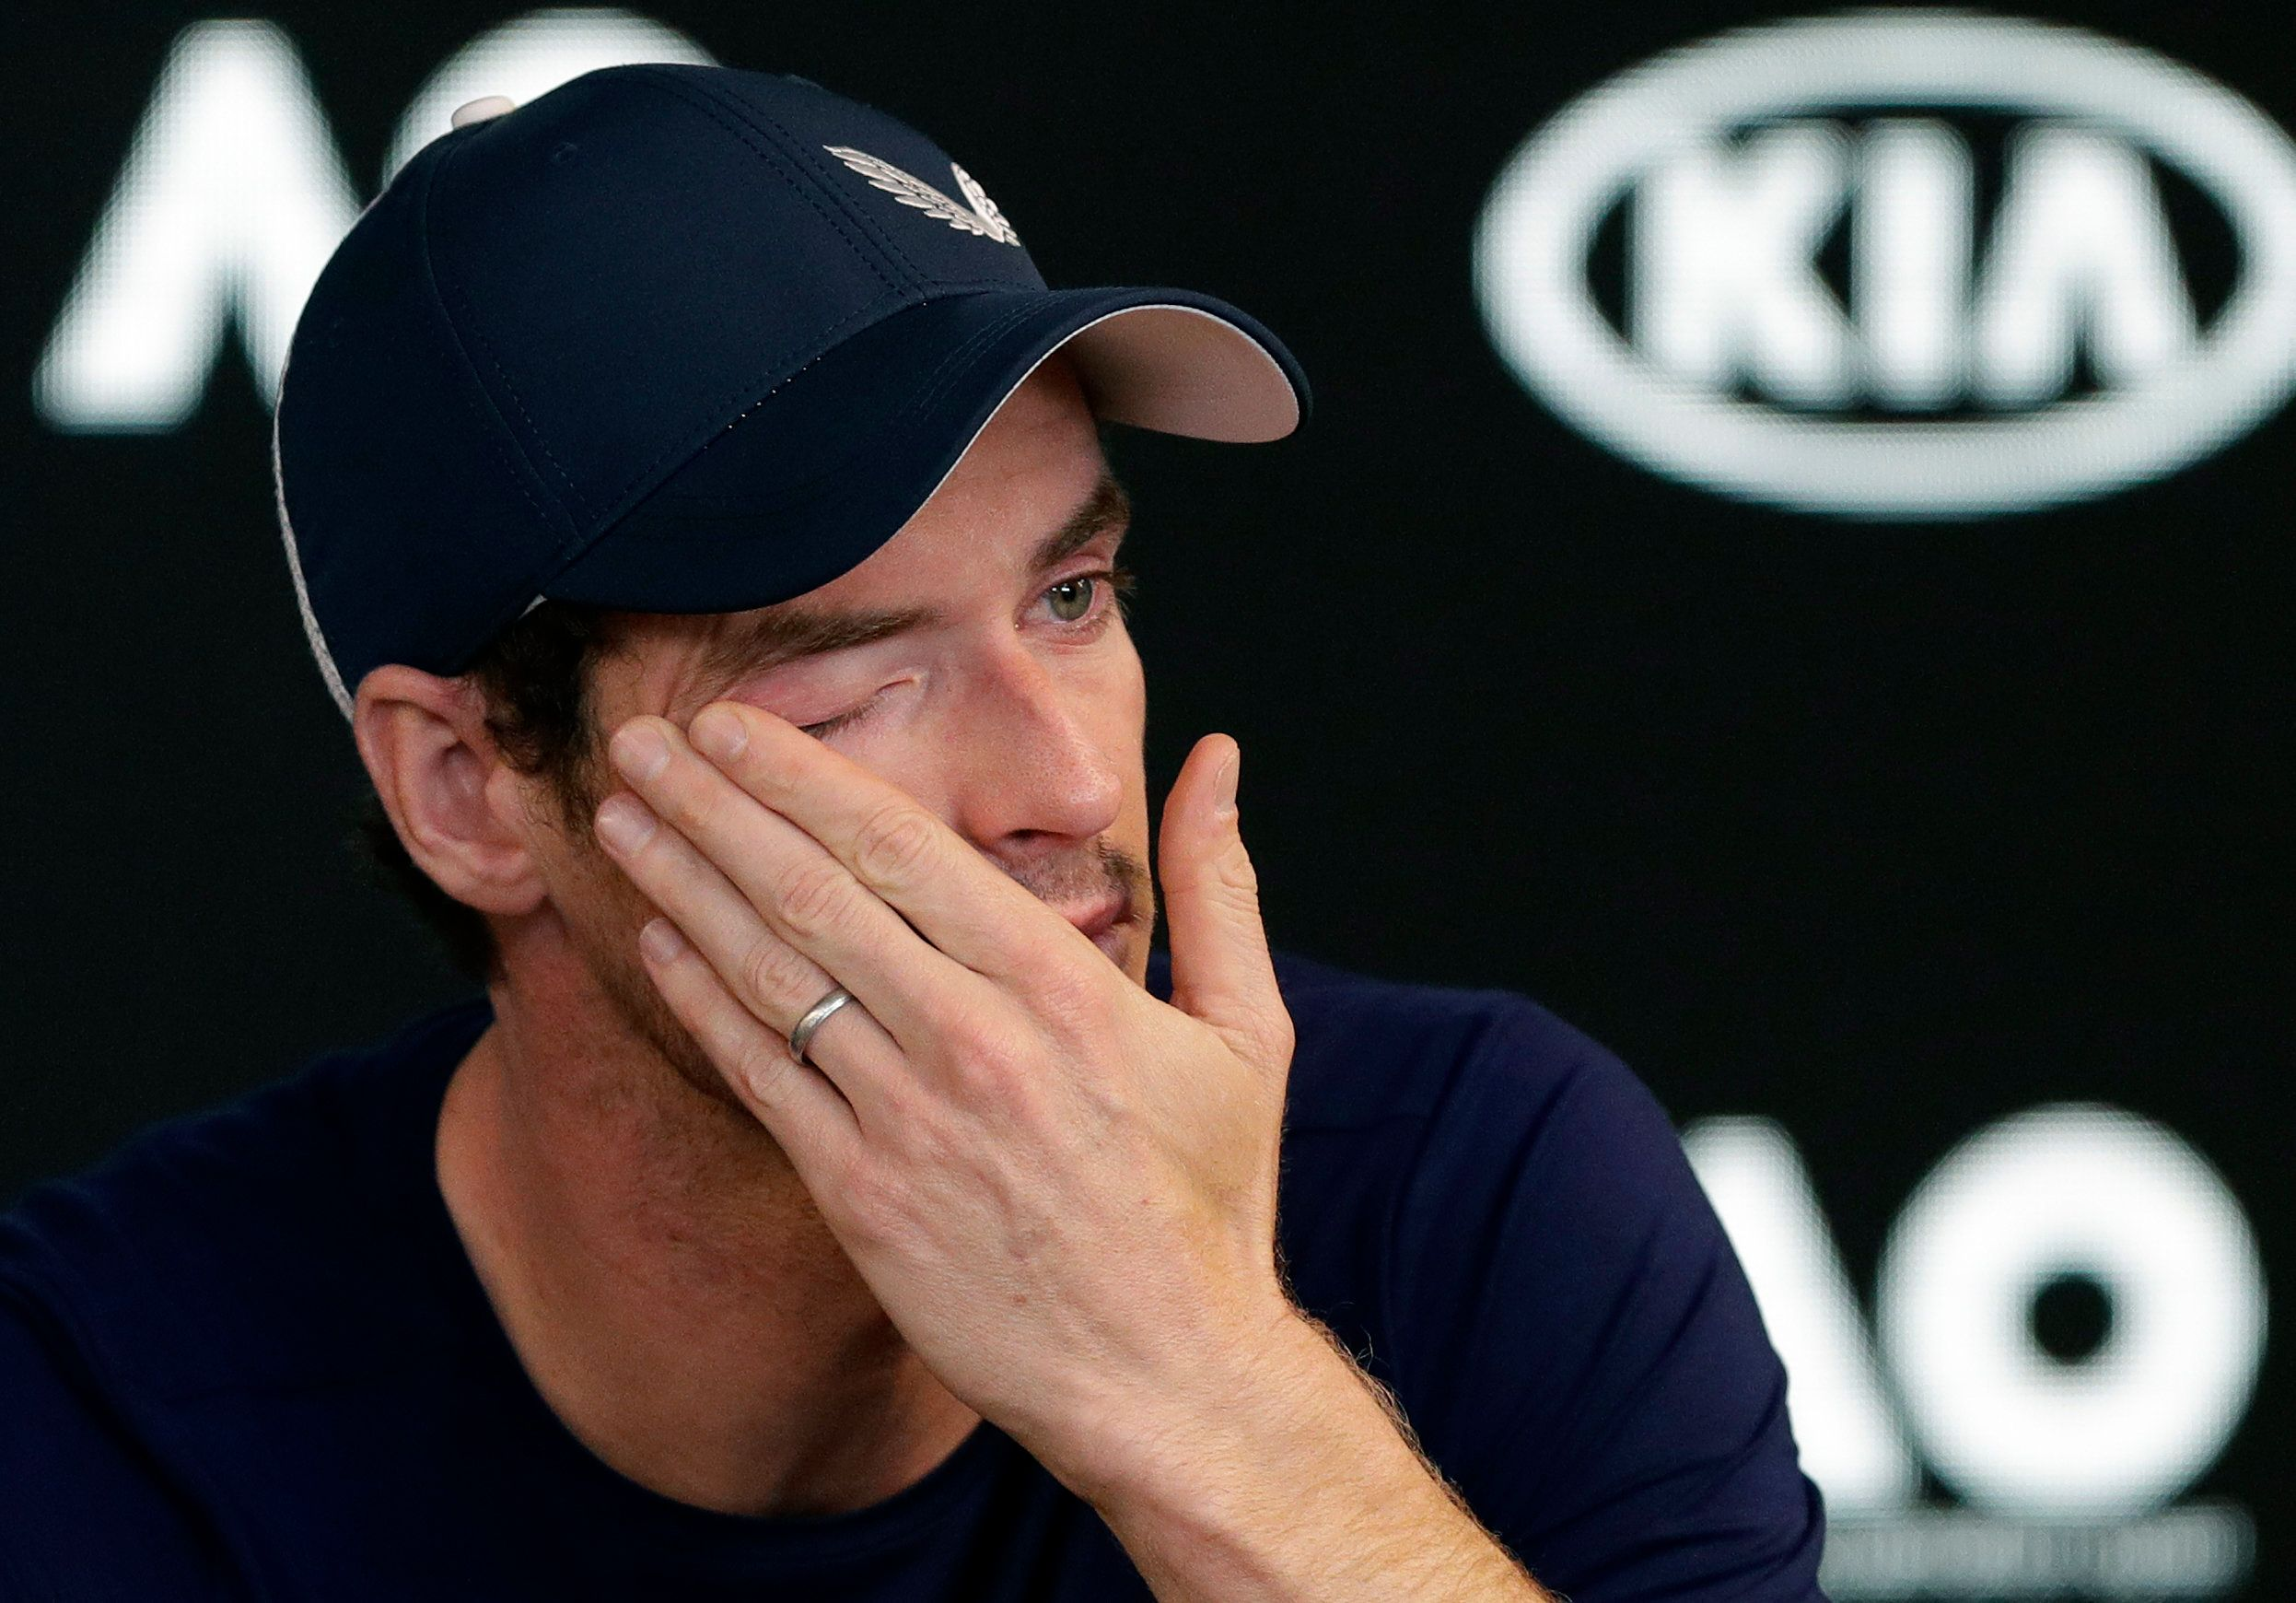 Watch Andy Murray Tearfully Announce He's In So Much Pain He Might Have To Retire This